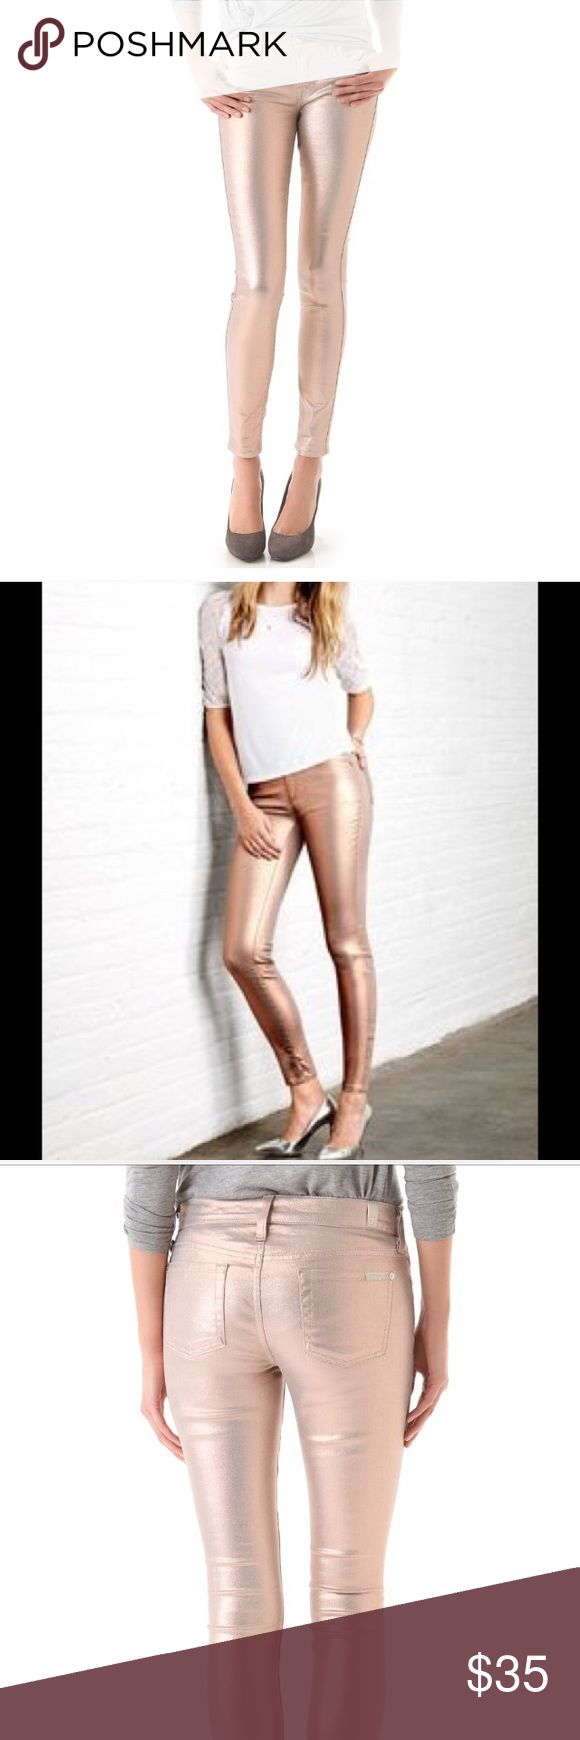 Metallic Rose Gold Jean Victoria Secret Siren mid rise jean in metallic rose gold.  The VS Siren gets glam with an allover metallic shine in unique Dusty Rose color.  These are low rise, skinny jeans and give a body-skimming silhouette, made in soft and stretchy denim.   Front zip with button closure; five-pocket styling. Machine wash. Tumble dry. Imported cotton/polyester/spandex. Size 2.  Beautiful fall/winter color.  Wore 2 times and got lots of compliments.  Great statement Jean…